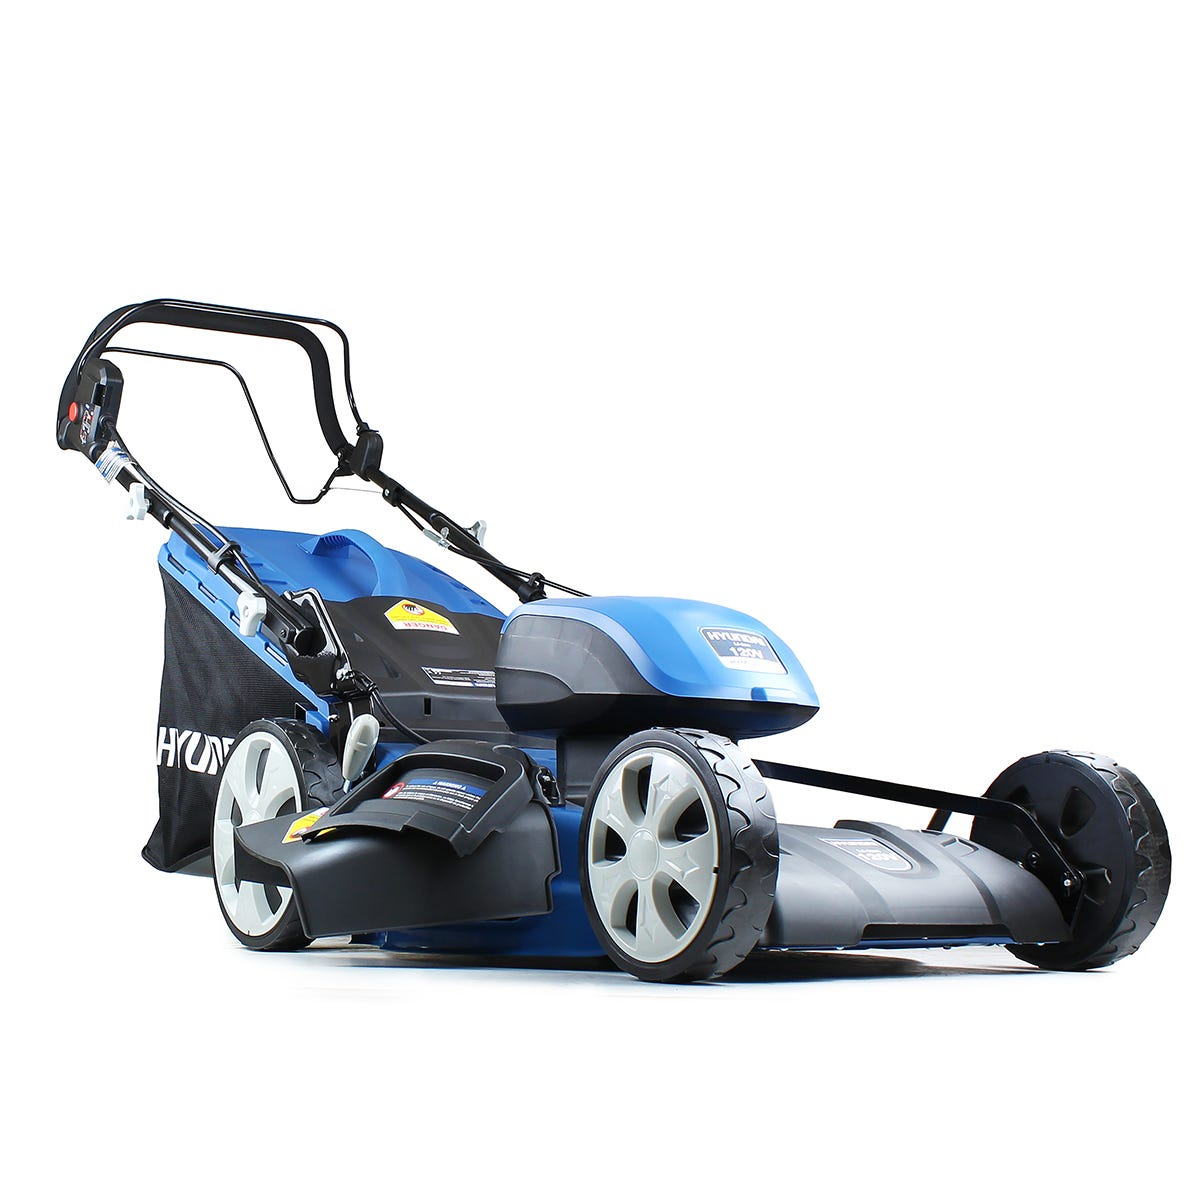 Image of Hyundai HYM120Li510 Cordless Lawnmower Battery Powered Self Propelled 51cm Cutting Width with 120v Lithium-ion Battery and Charger